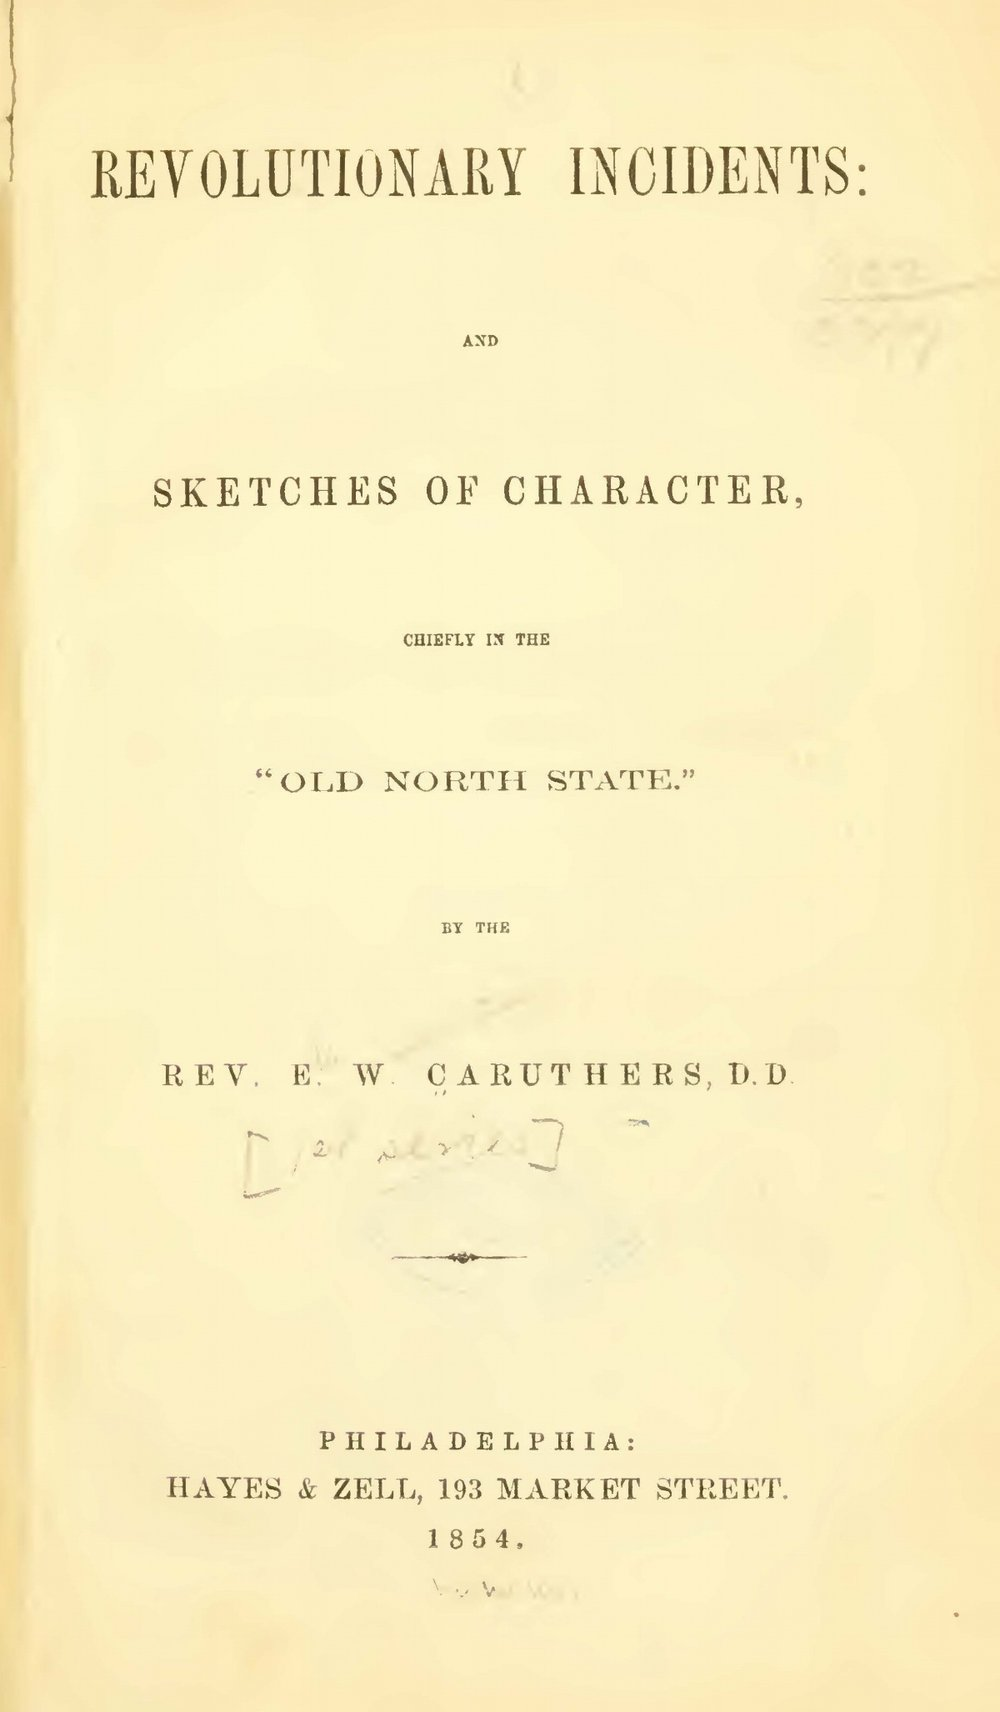 Caruthers, Eli Washington, Revolutionary Incidents Title Page.jpg